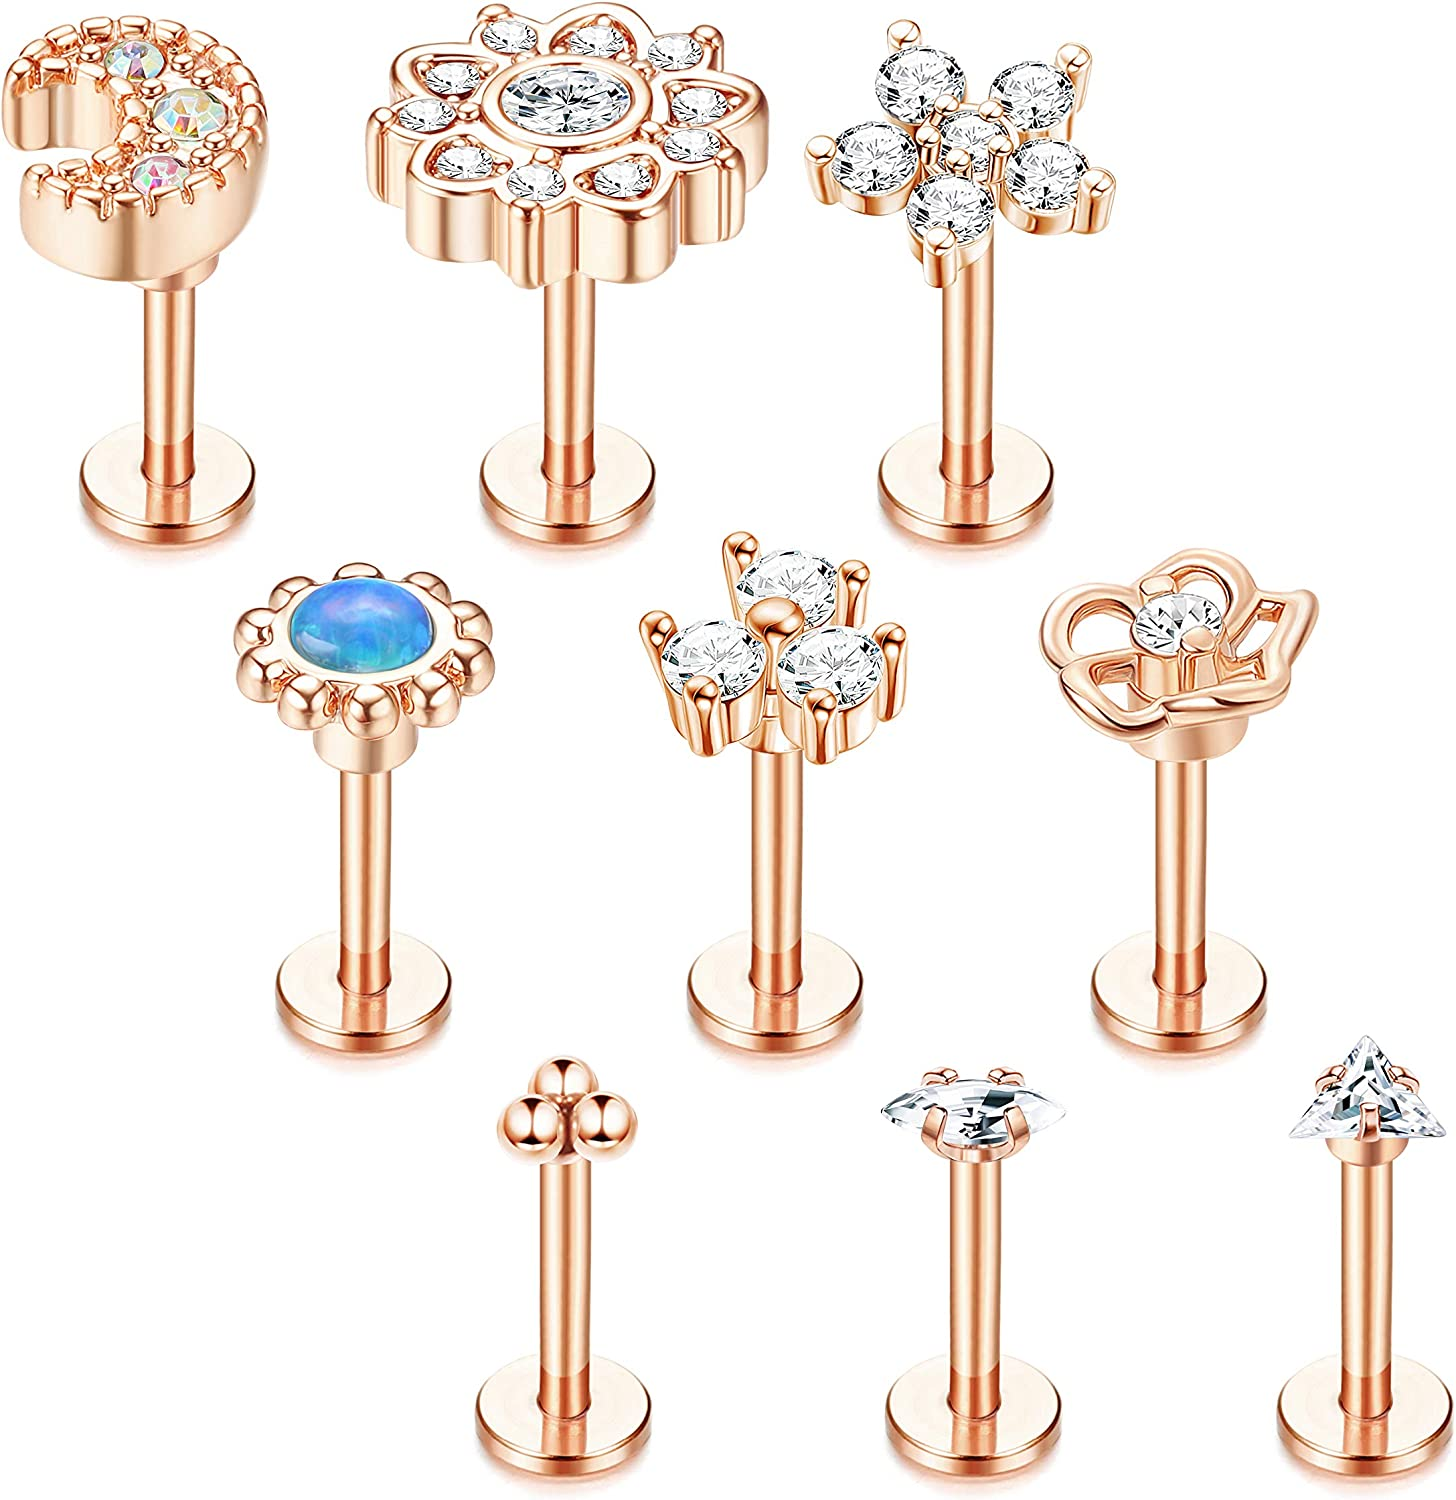 Drperfect 9 Pcs 16G Stainless Steel Tragus Earrings for Women Men Cartilage Helix Piercing Jewelry Lip Rings Nose Labret Studs